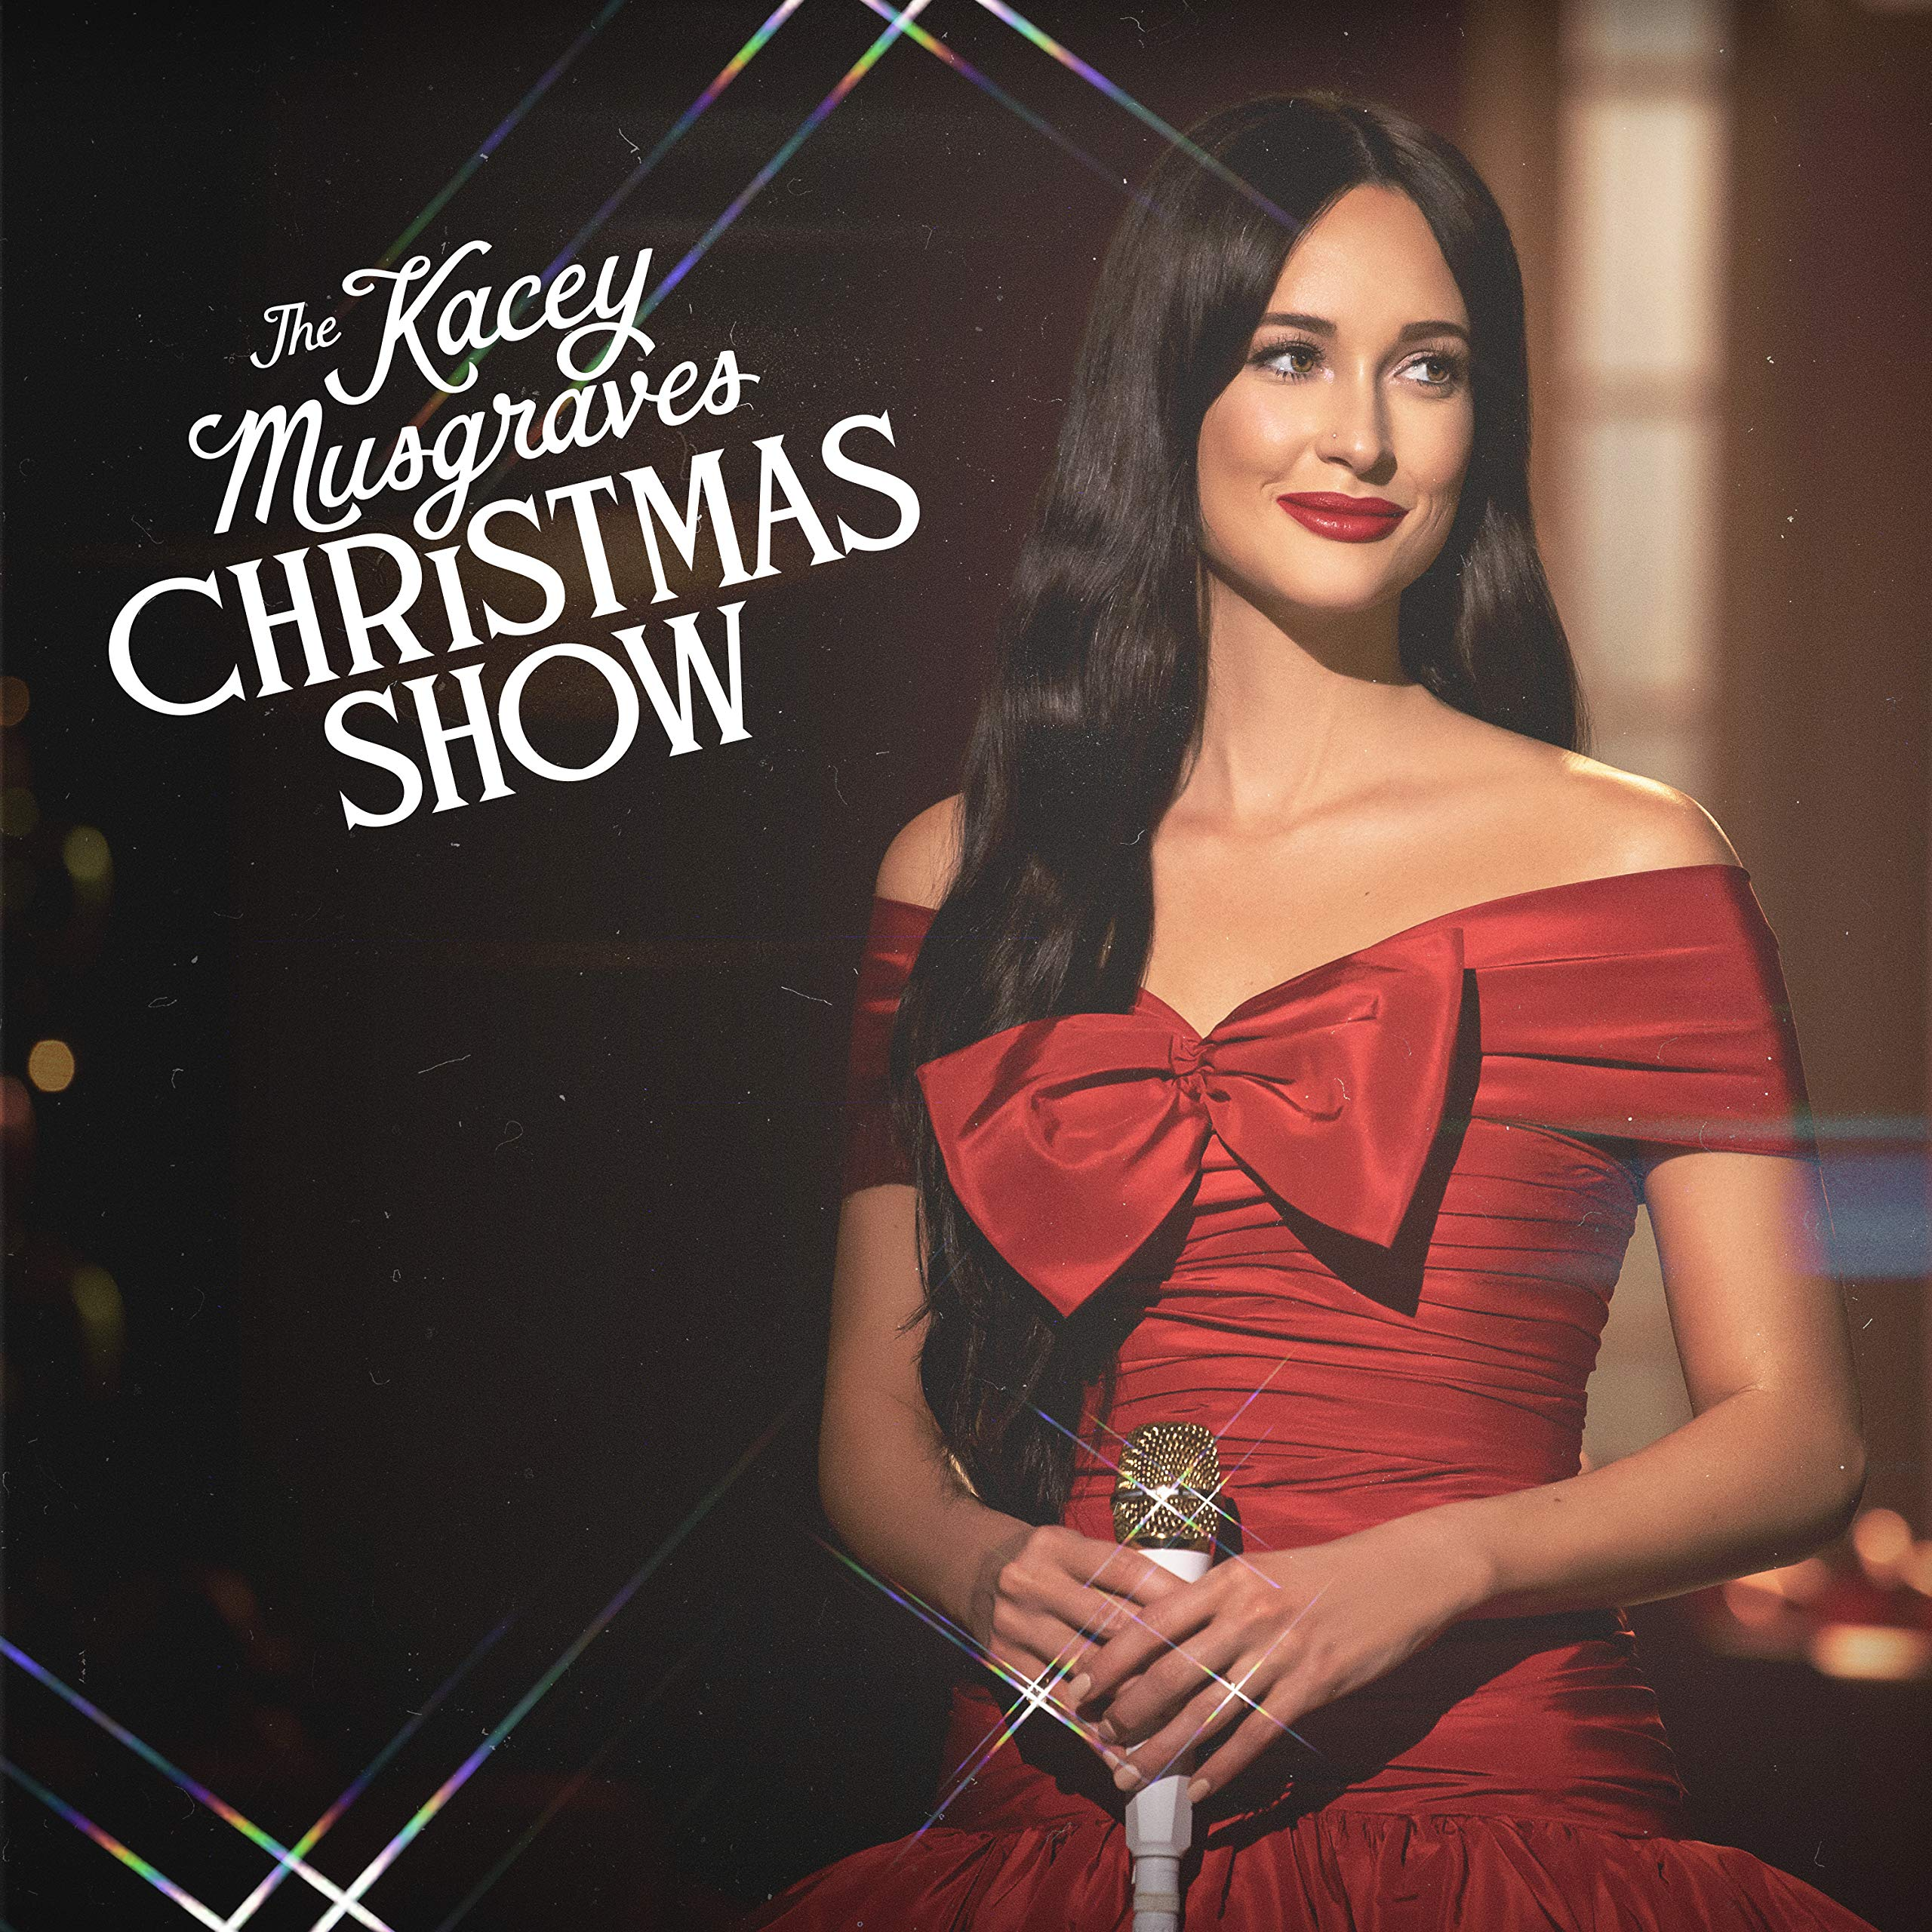 Book Cover: The Kacey Musgraves Christmas Show